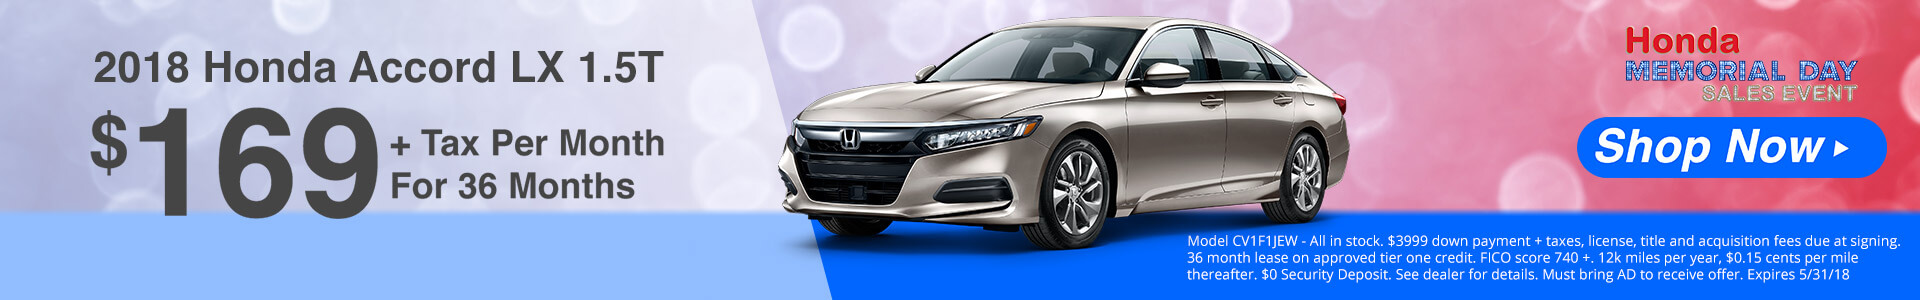 Honda Accord $169 Lease